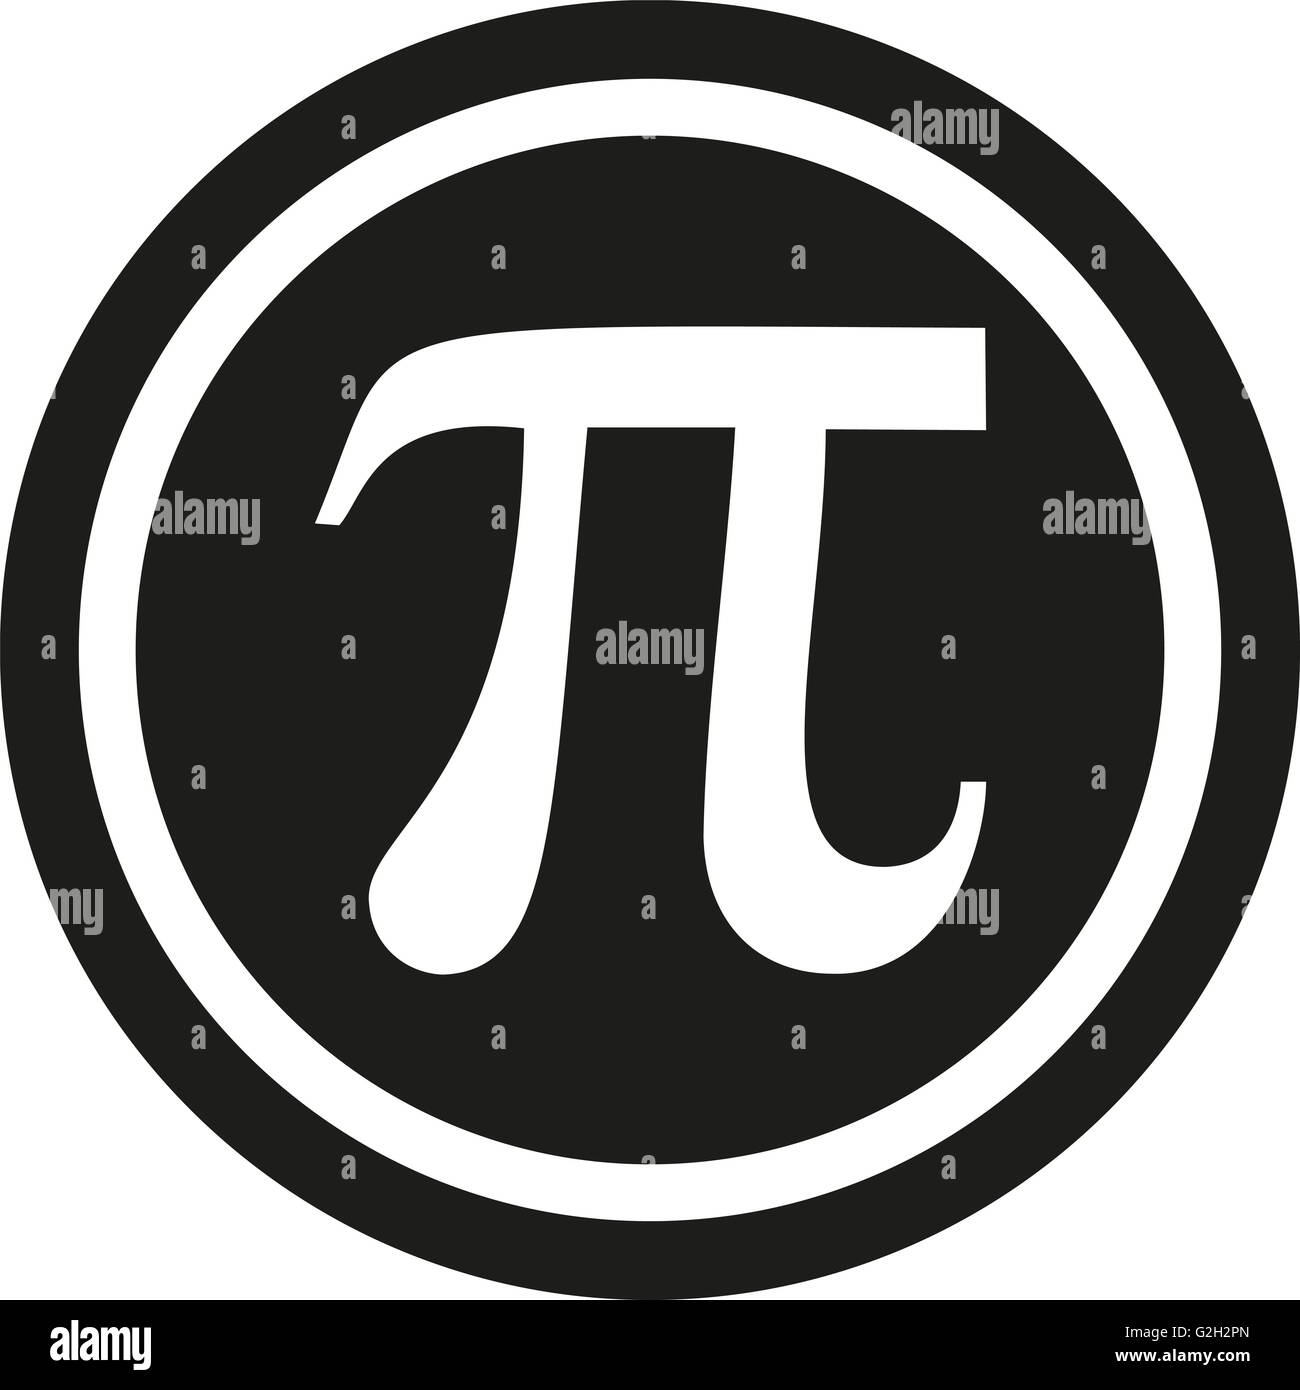 Pi symbol with the for Pi character